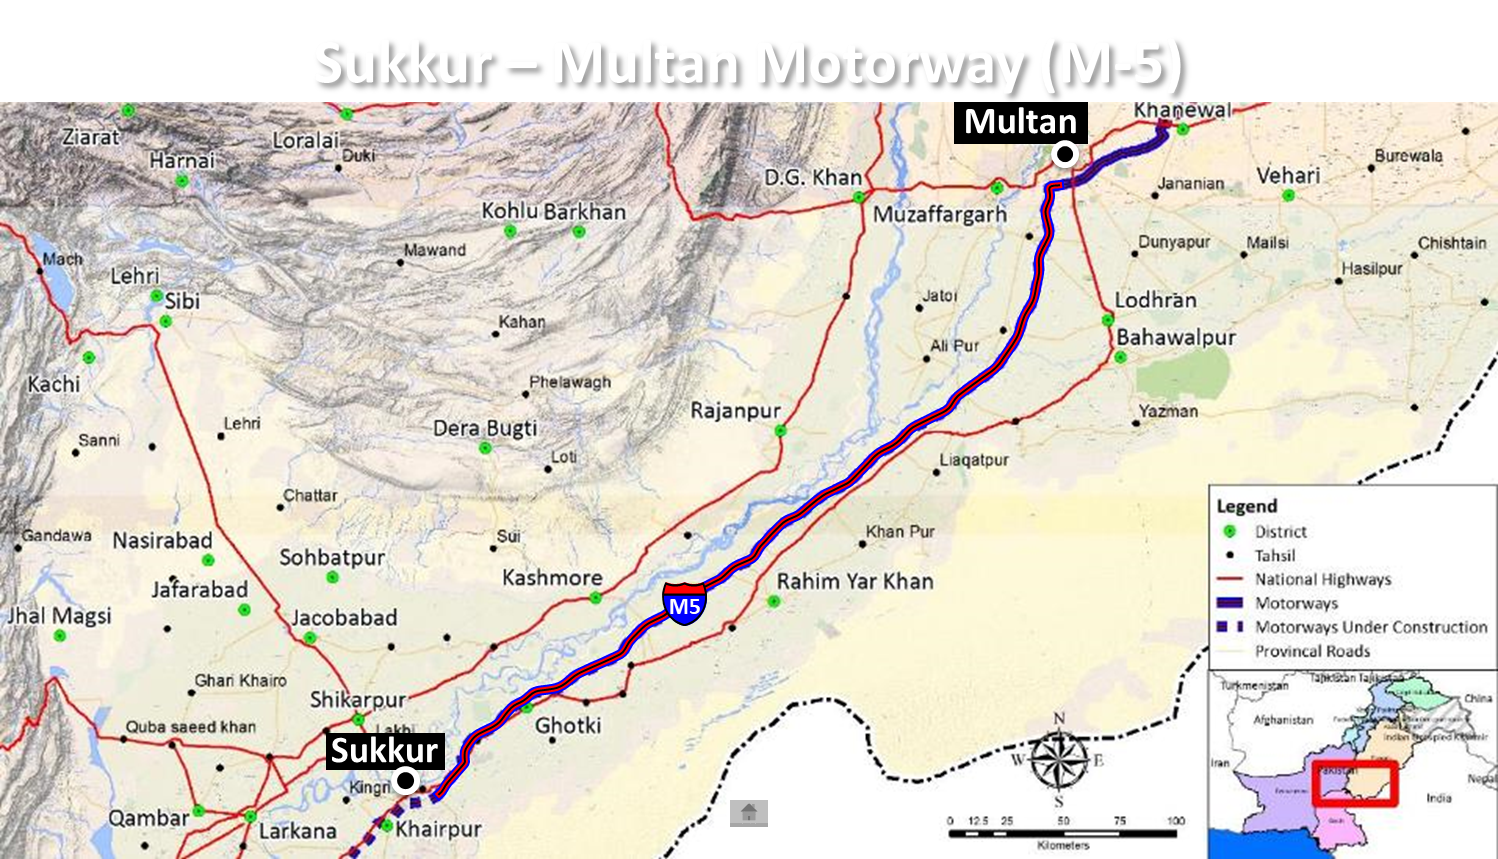 Peshawar-Karachi Motorway (Multan-Sukkur Section)